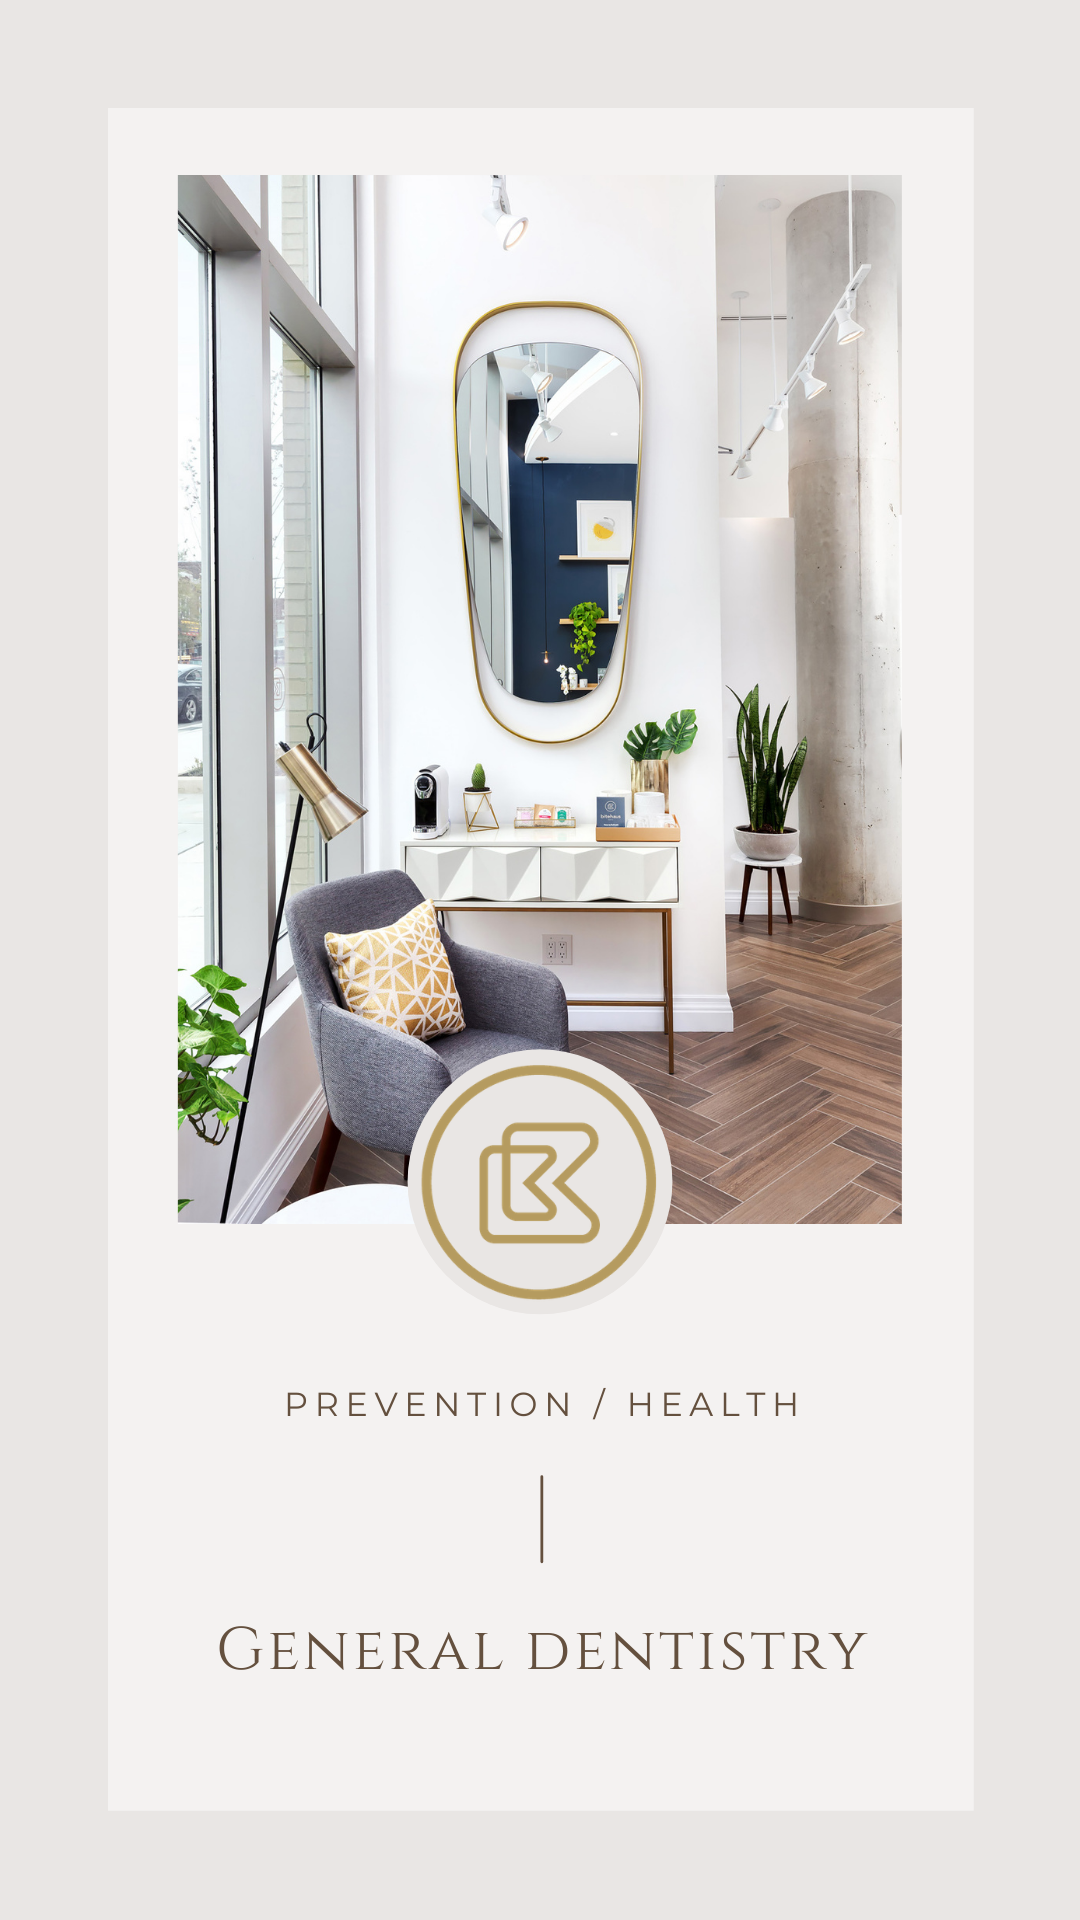 Our comprehensive prevention programme includes digital images, tooth wear time-lapse scans, low-radiation digital x-rays, diet advice, hygiene, sleep apnea and oral cancer screenings.